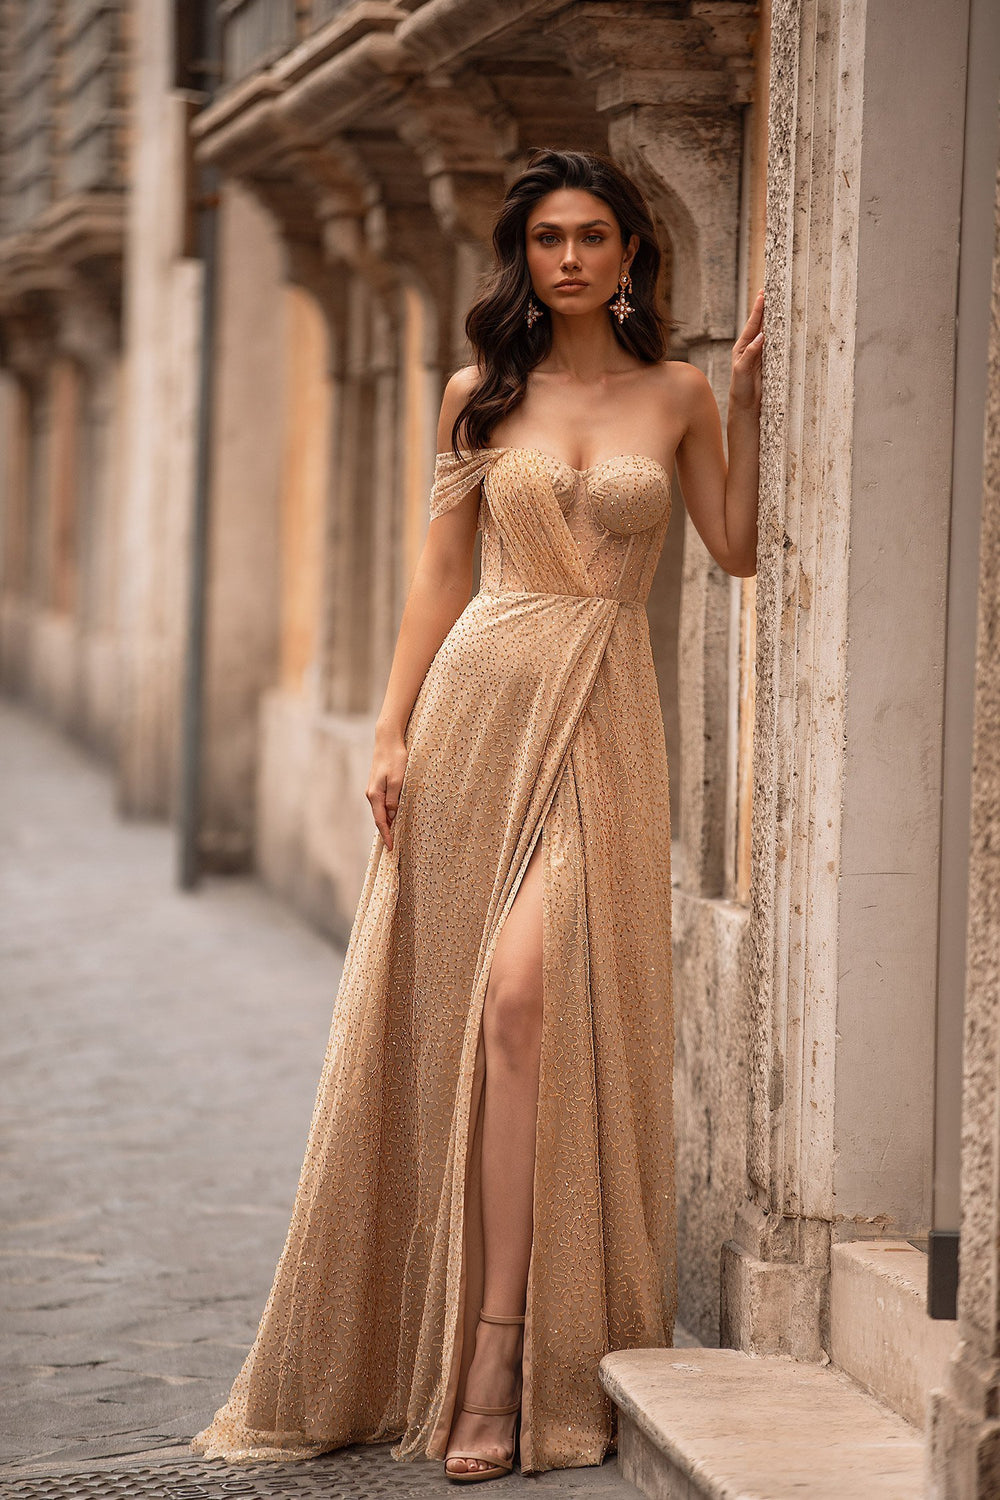 Rina - Gold Beaded Sequin Gown with One Shoulder, Side Slit & Bustier